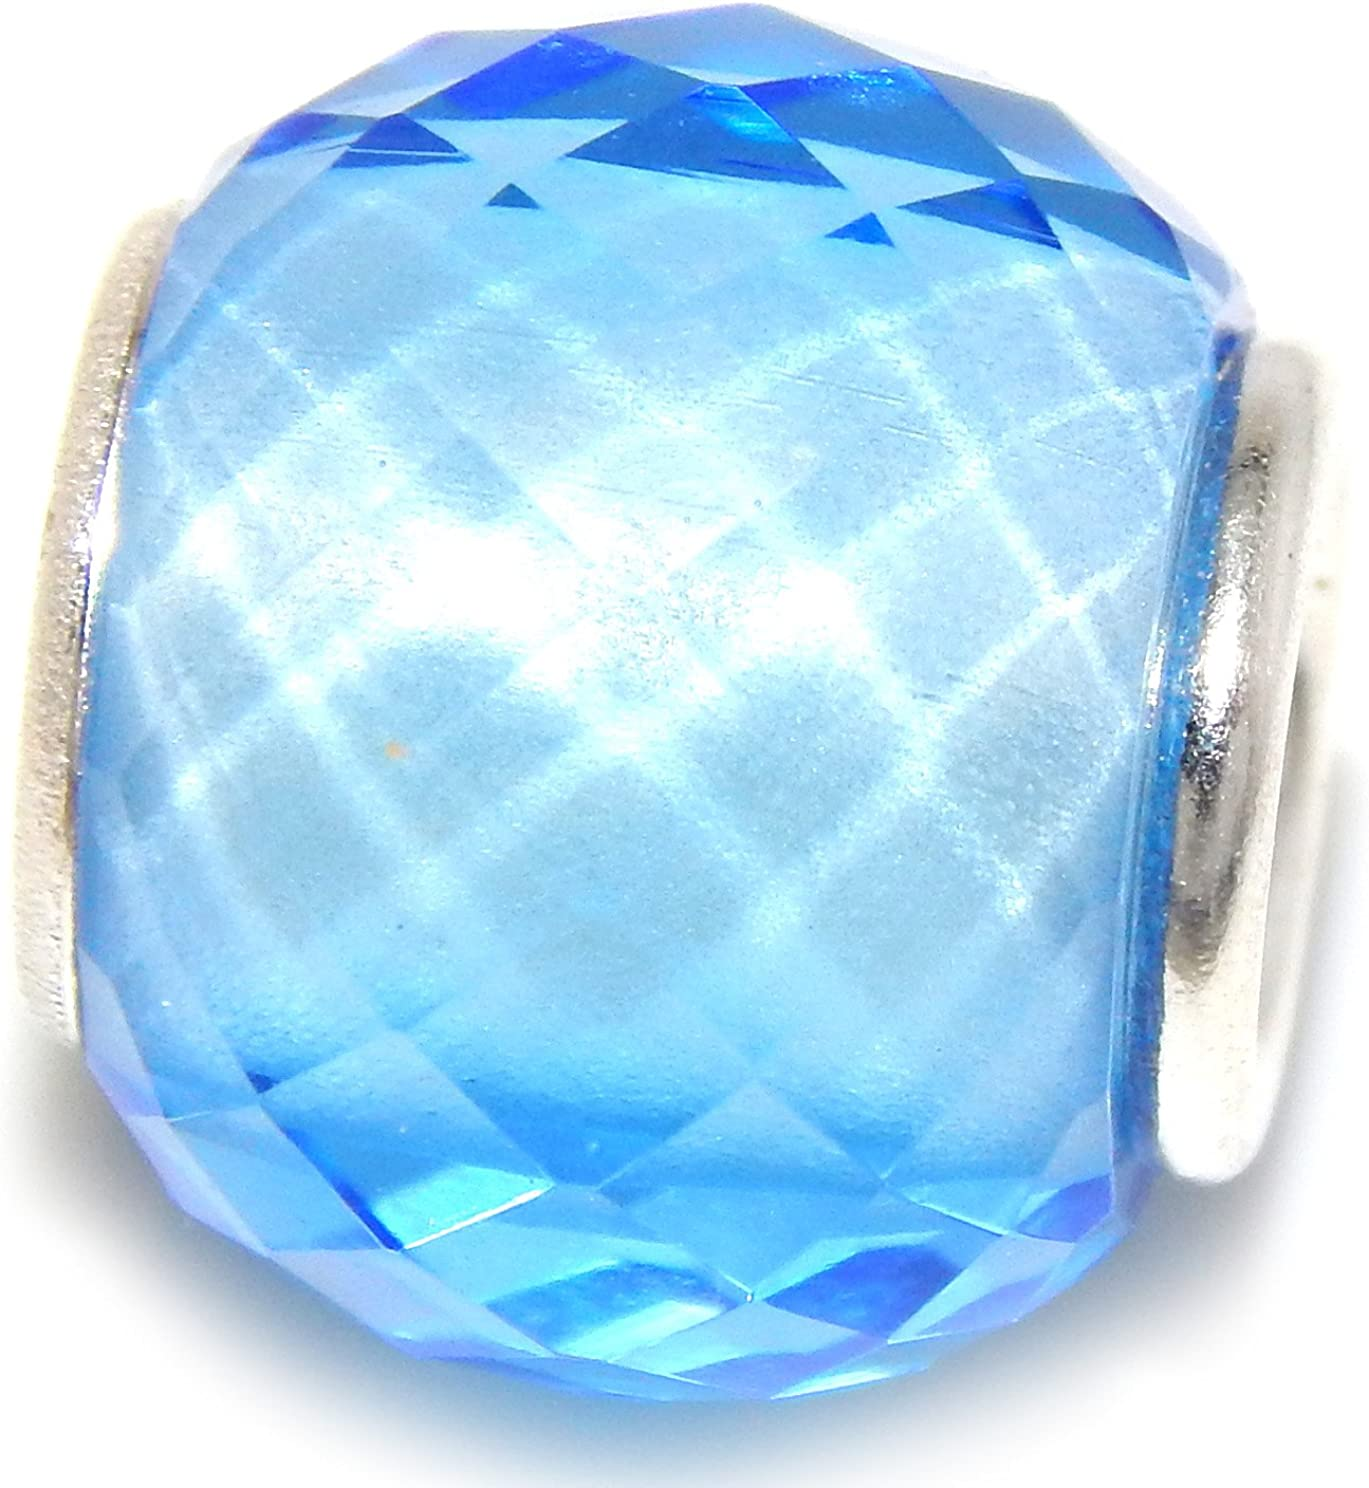 Solid 925 Sterling Silver Light Blue Faceted Charm Bead 3003 for European Snake Chain Bracelets